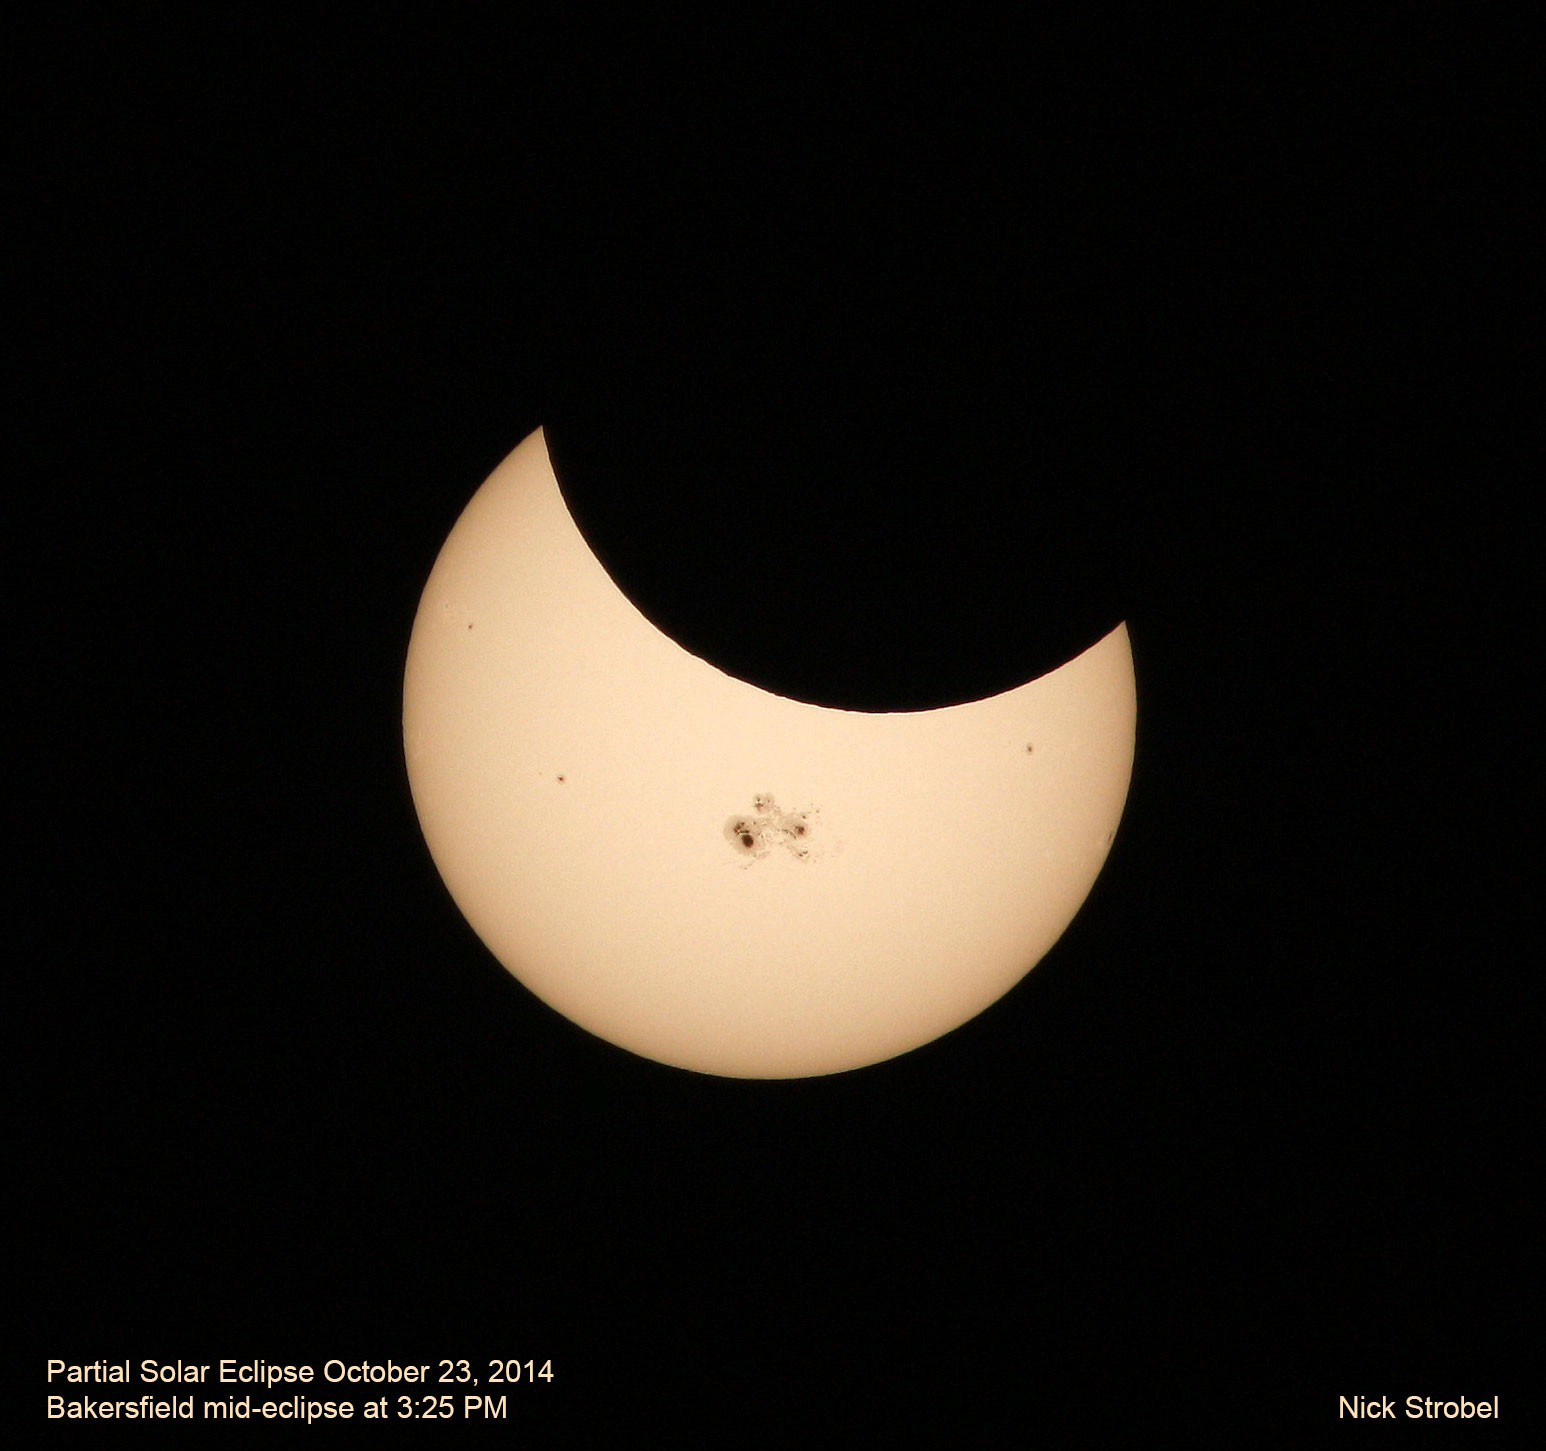 Solar eclipse of October 23, 2014 from Bakersfield